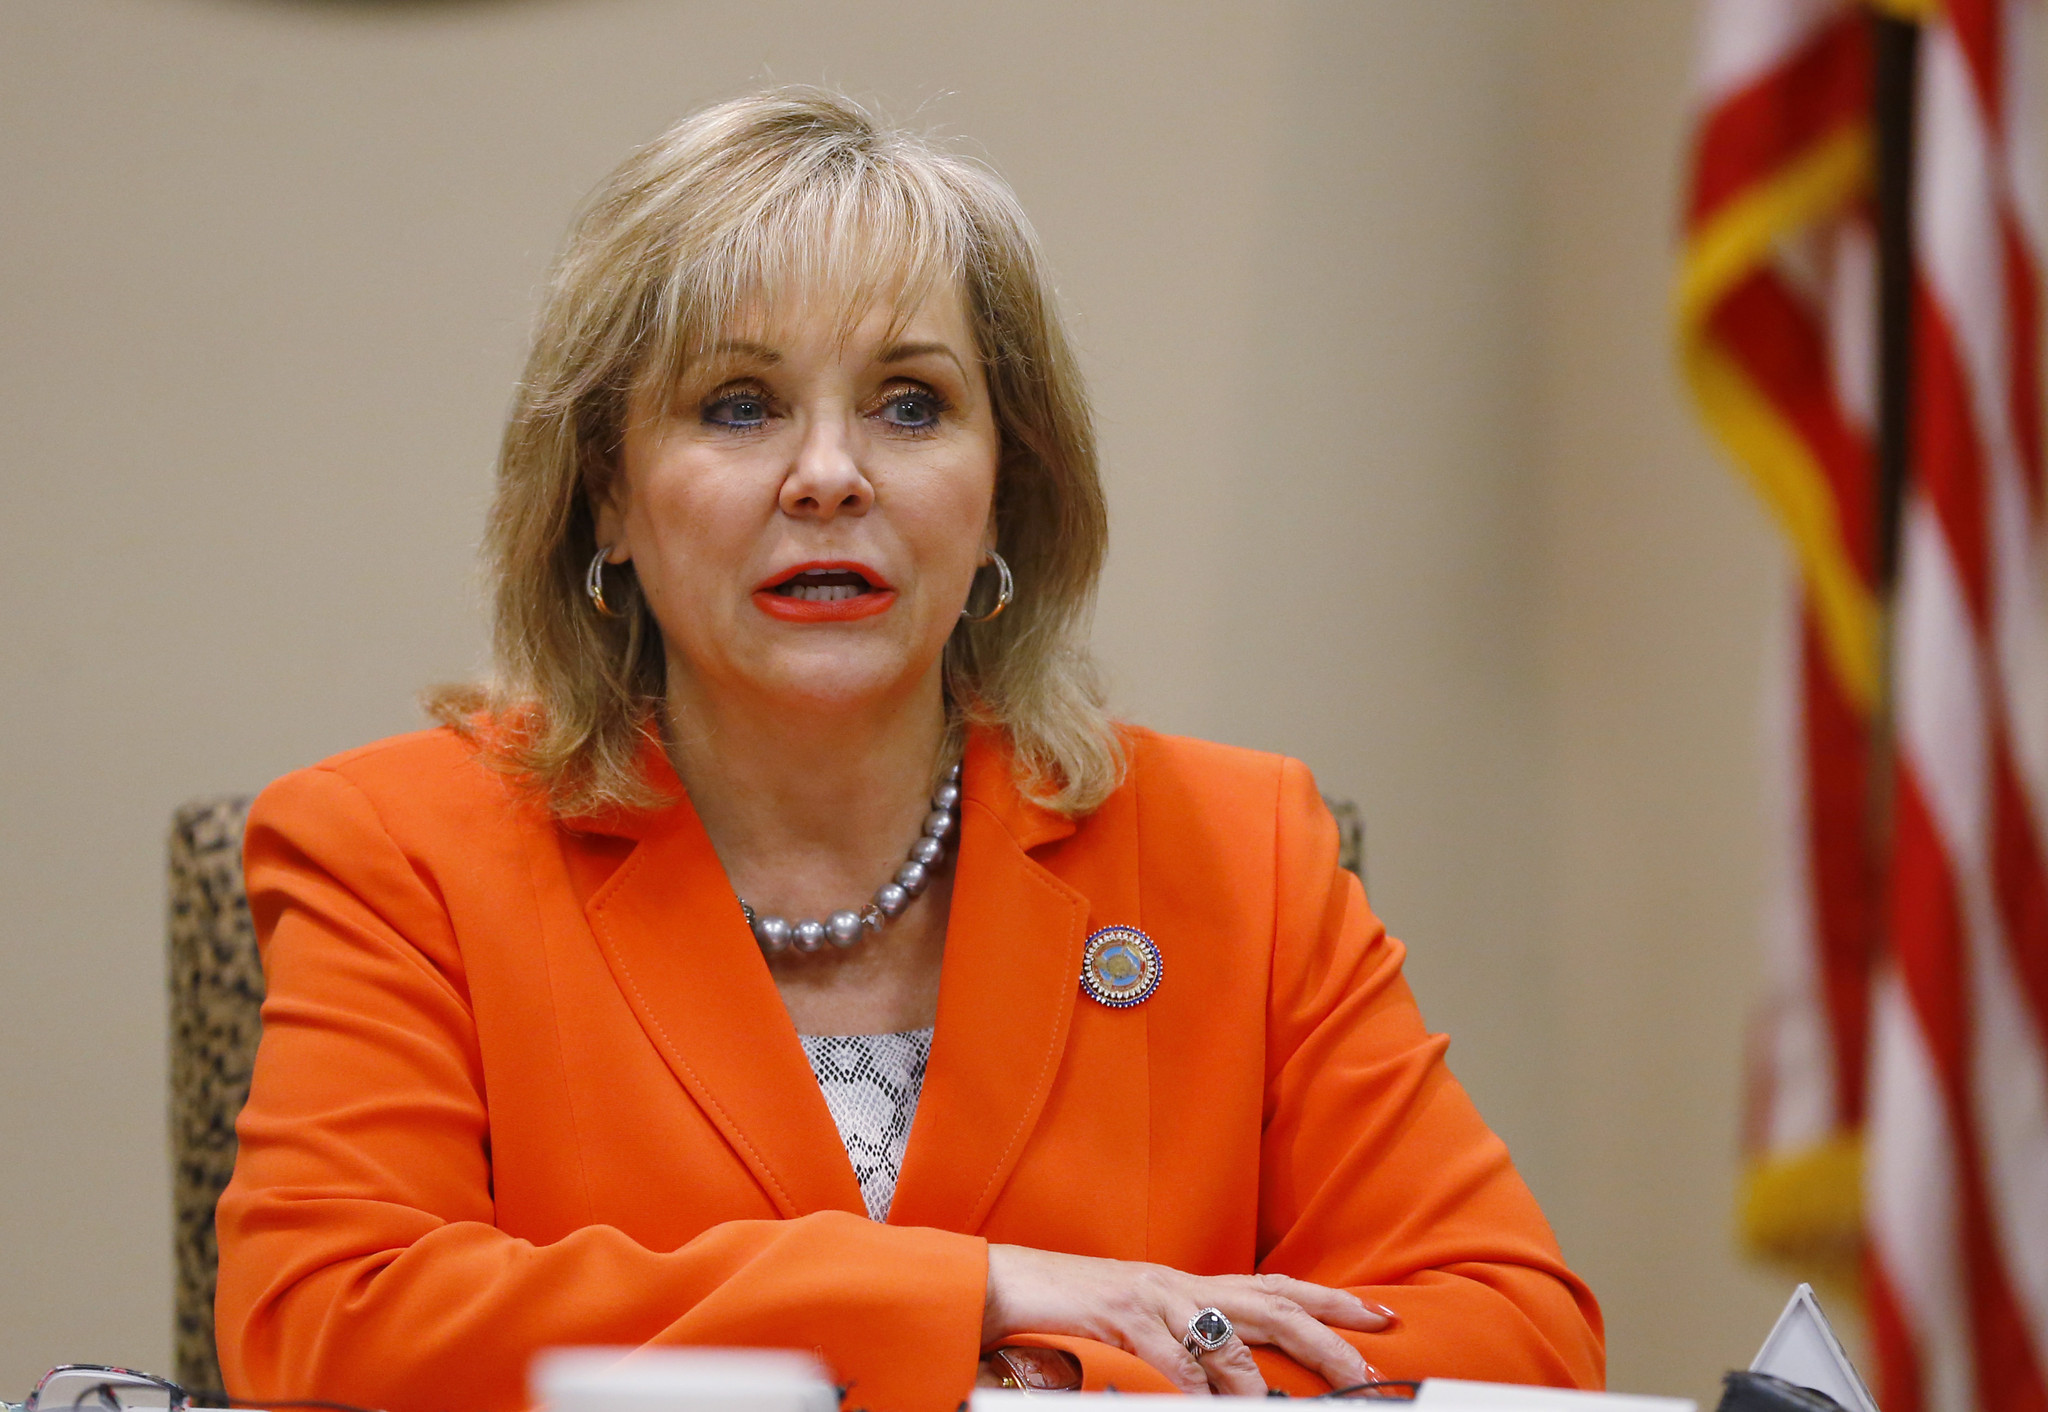 Oklahoma Gov. Mary Fallin has expressed interest in working alongside Donald Trump.